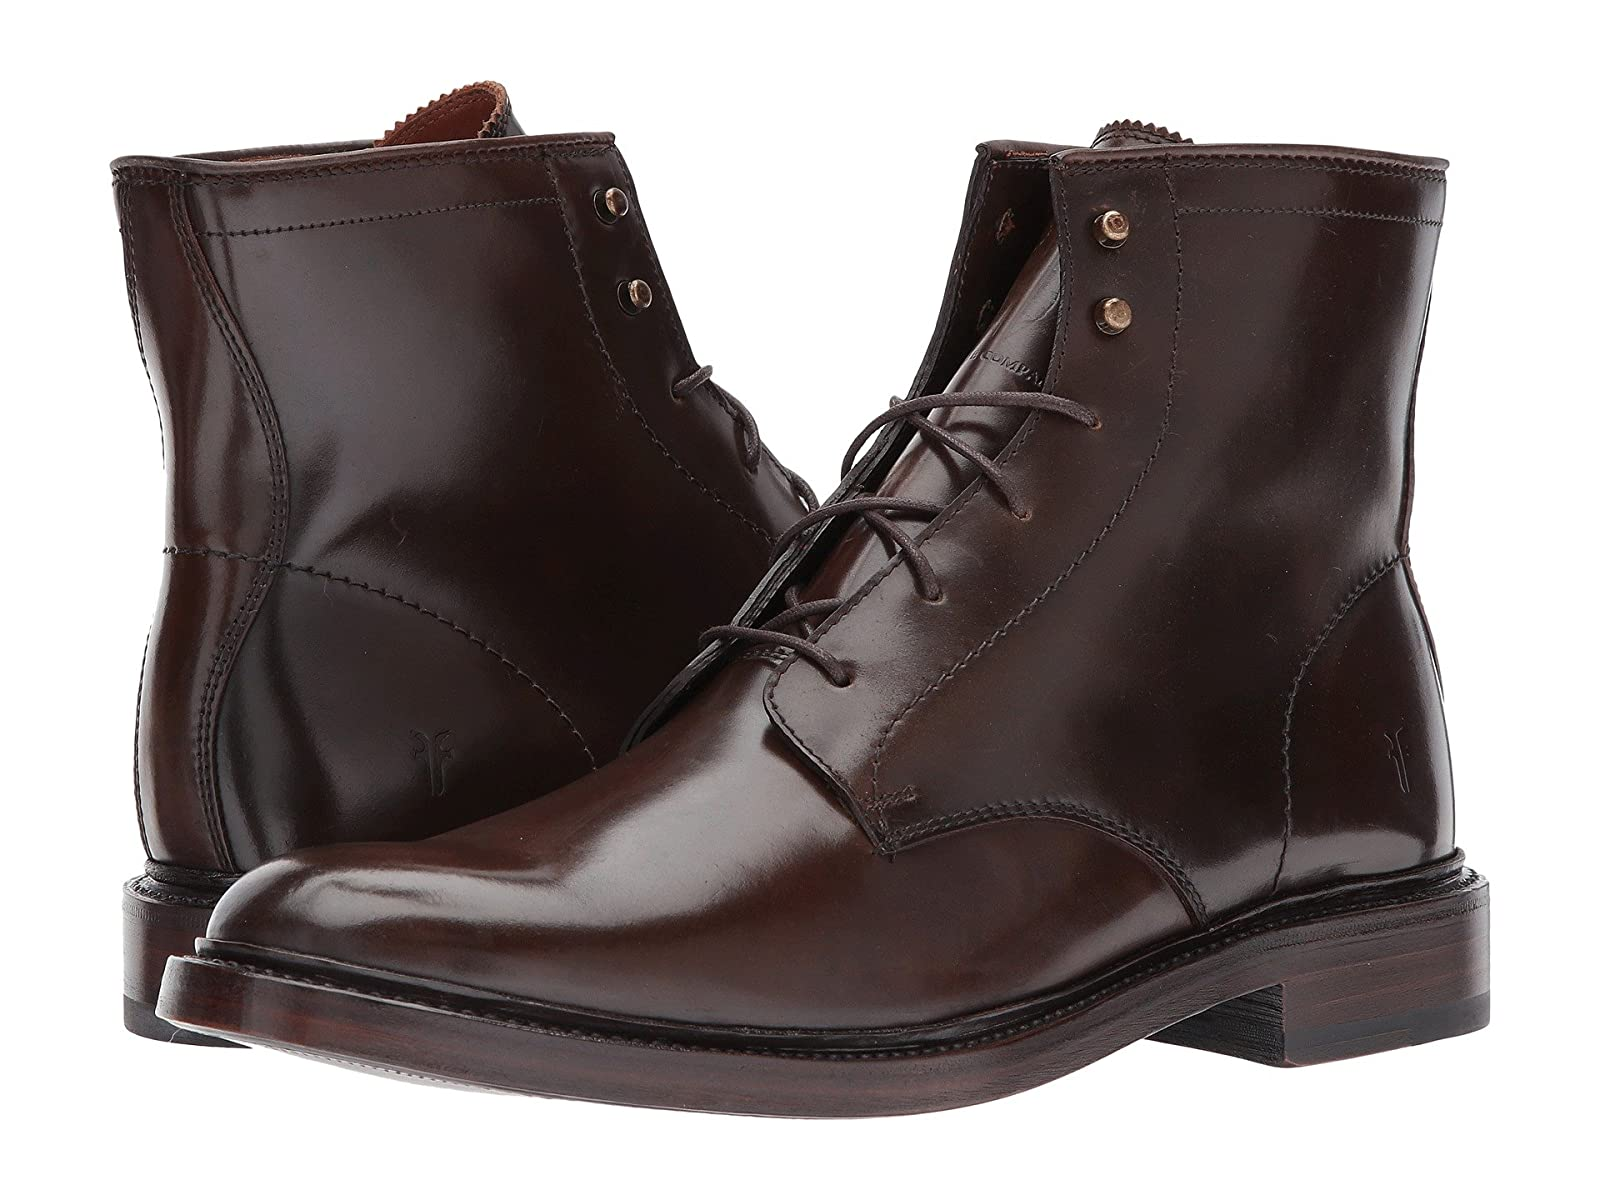 Frye James Lace UpCheap and distinctive eye-catching shoes